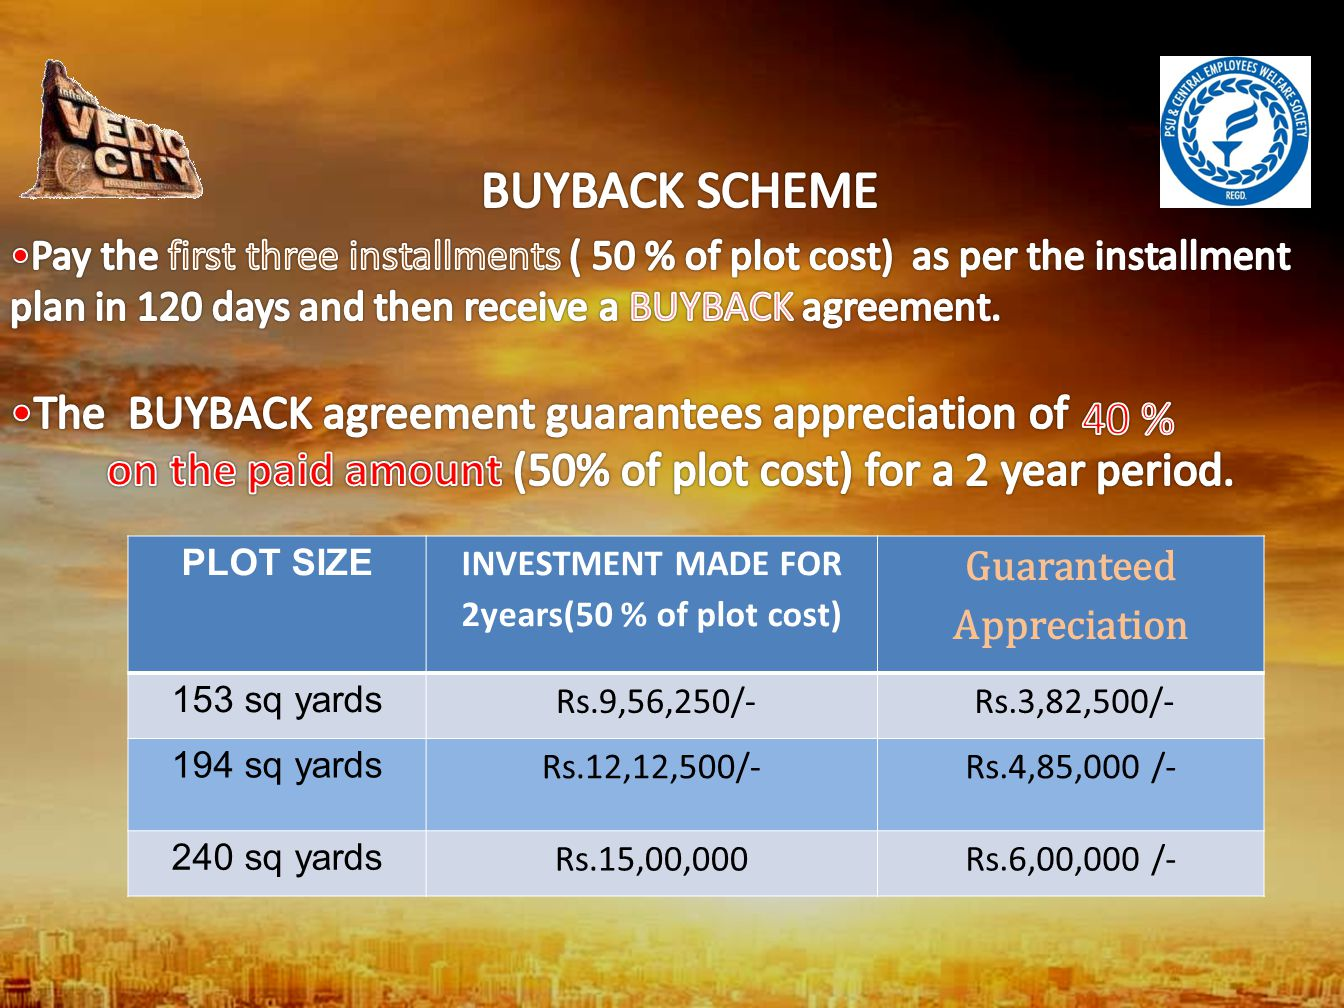 INVESTMENT MADE FOR 2years(50 % of plot cost) Guaranteed Appreciation